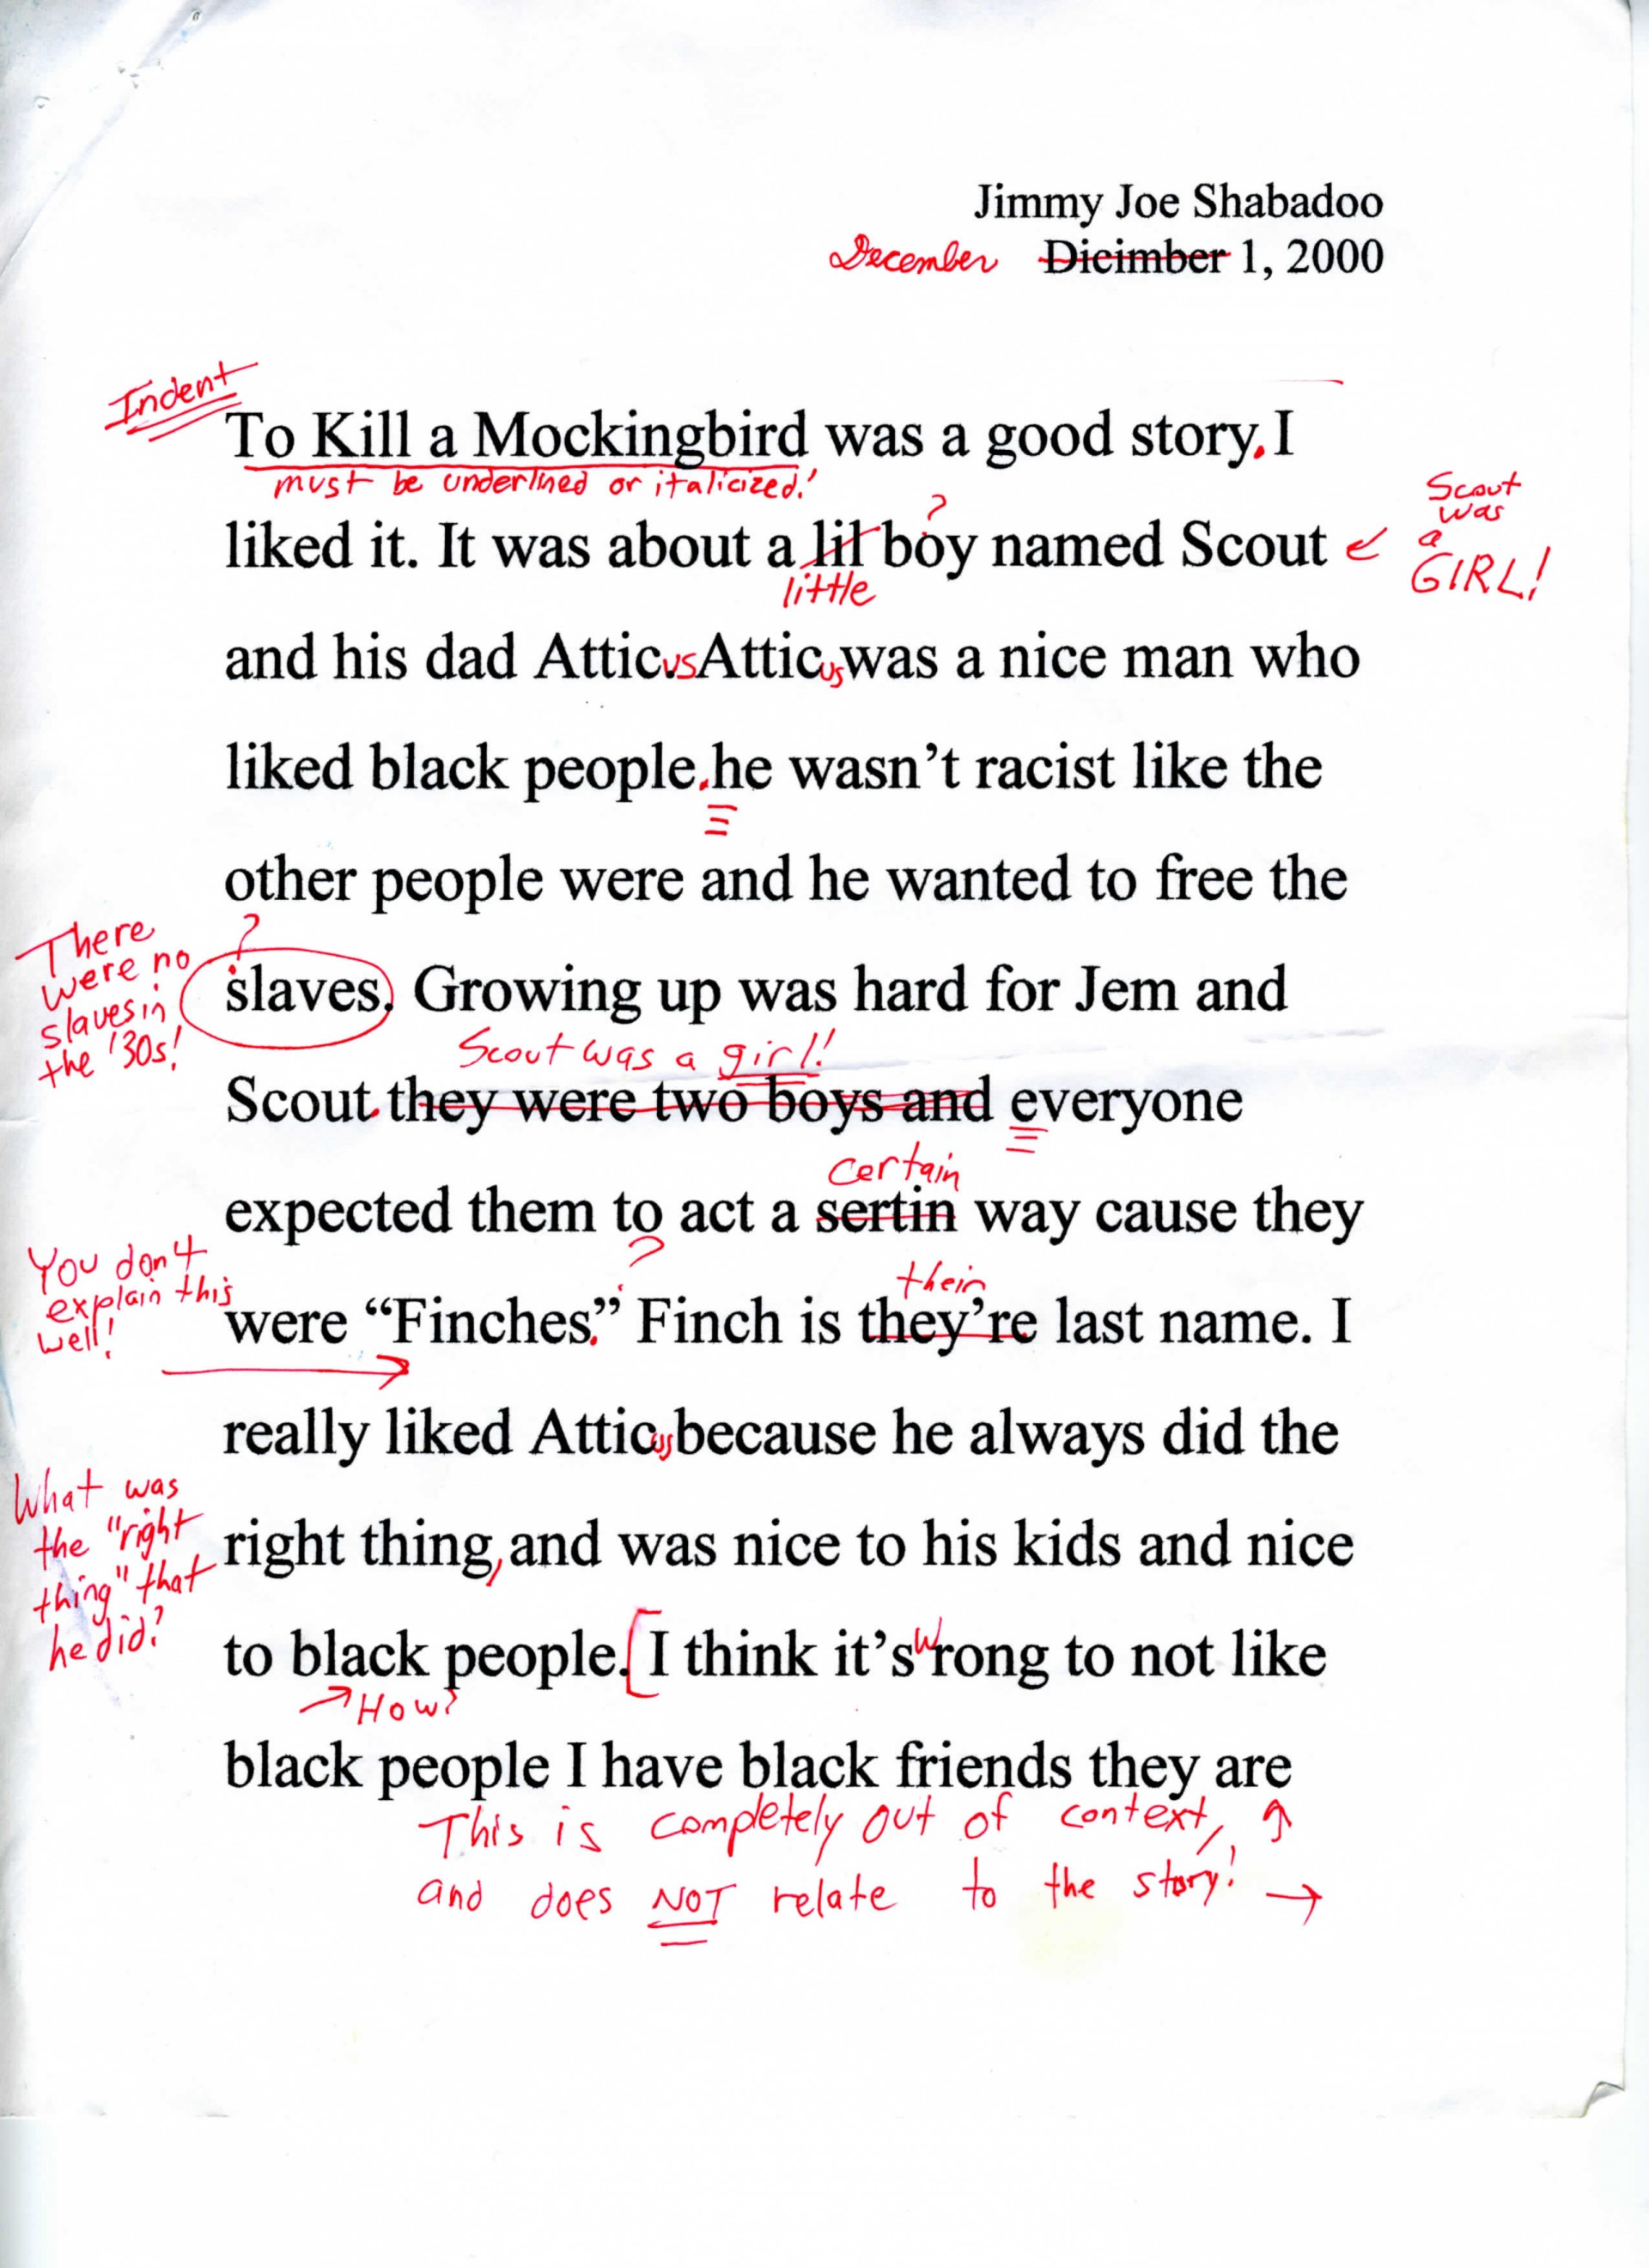 013 Essay Example To Kill Mockingbird Parody Paper Satirical Imposing Examples Satire On Love Gun Control Bullying 1920